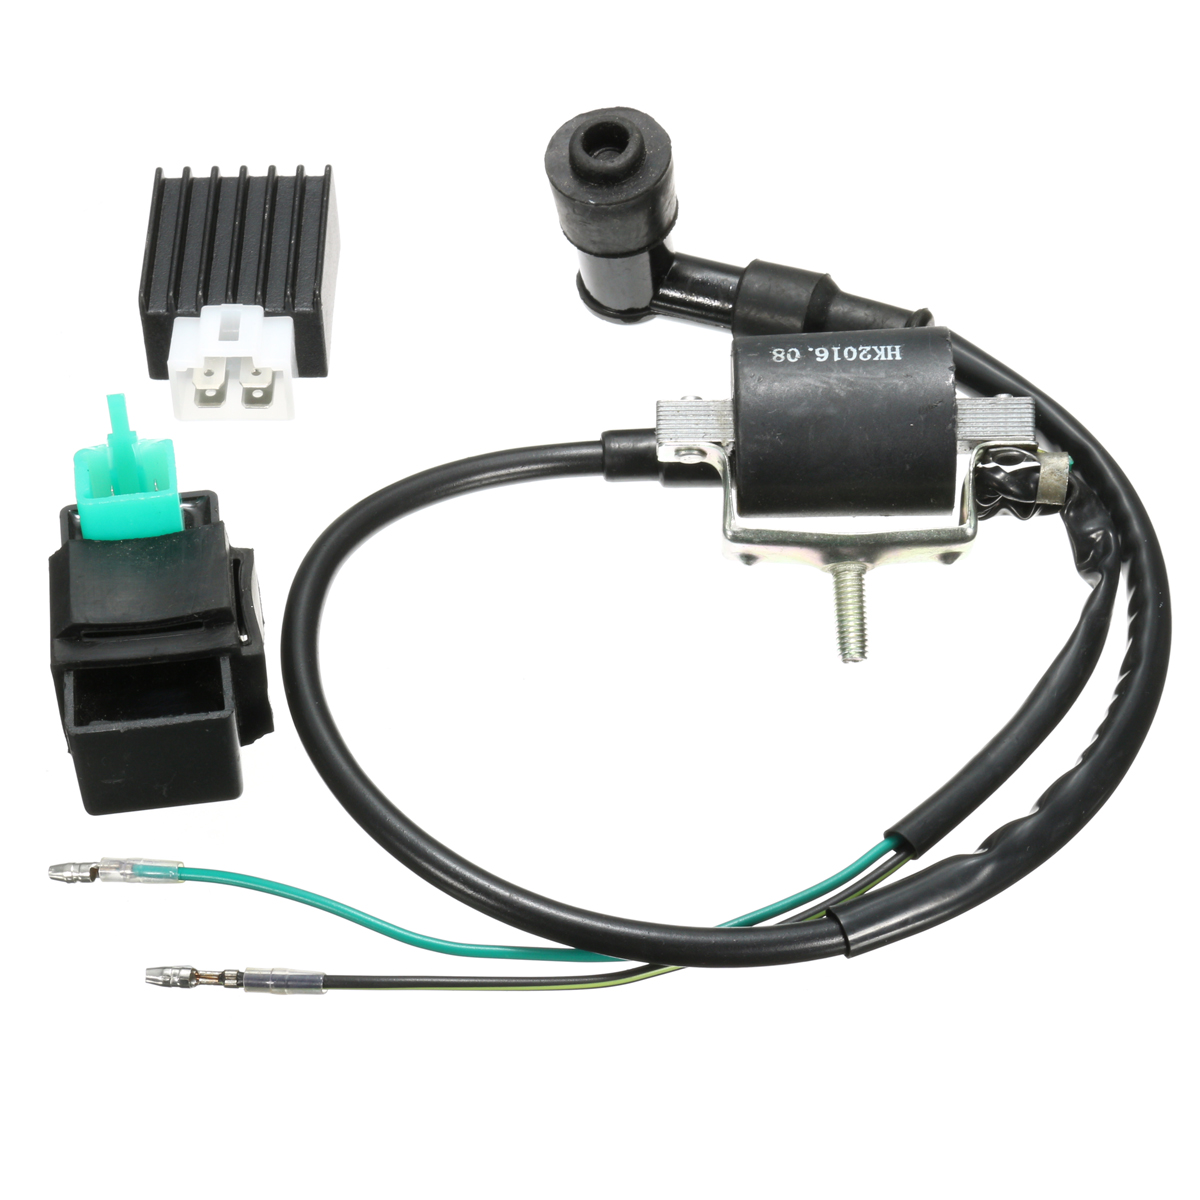 Ignition Coil CDI Rectifier Regulator For 110cc 125cc 140cc Pit Dirt Bike